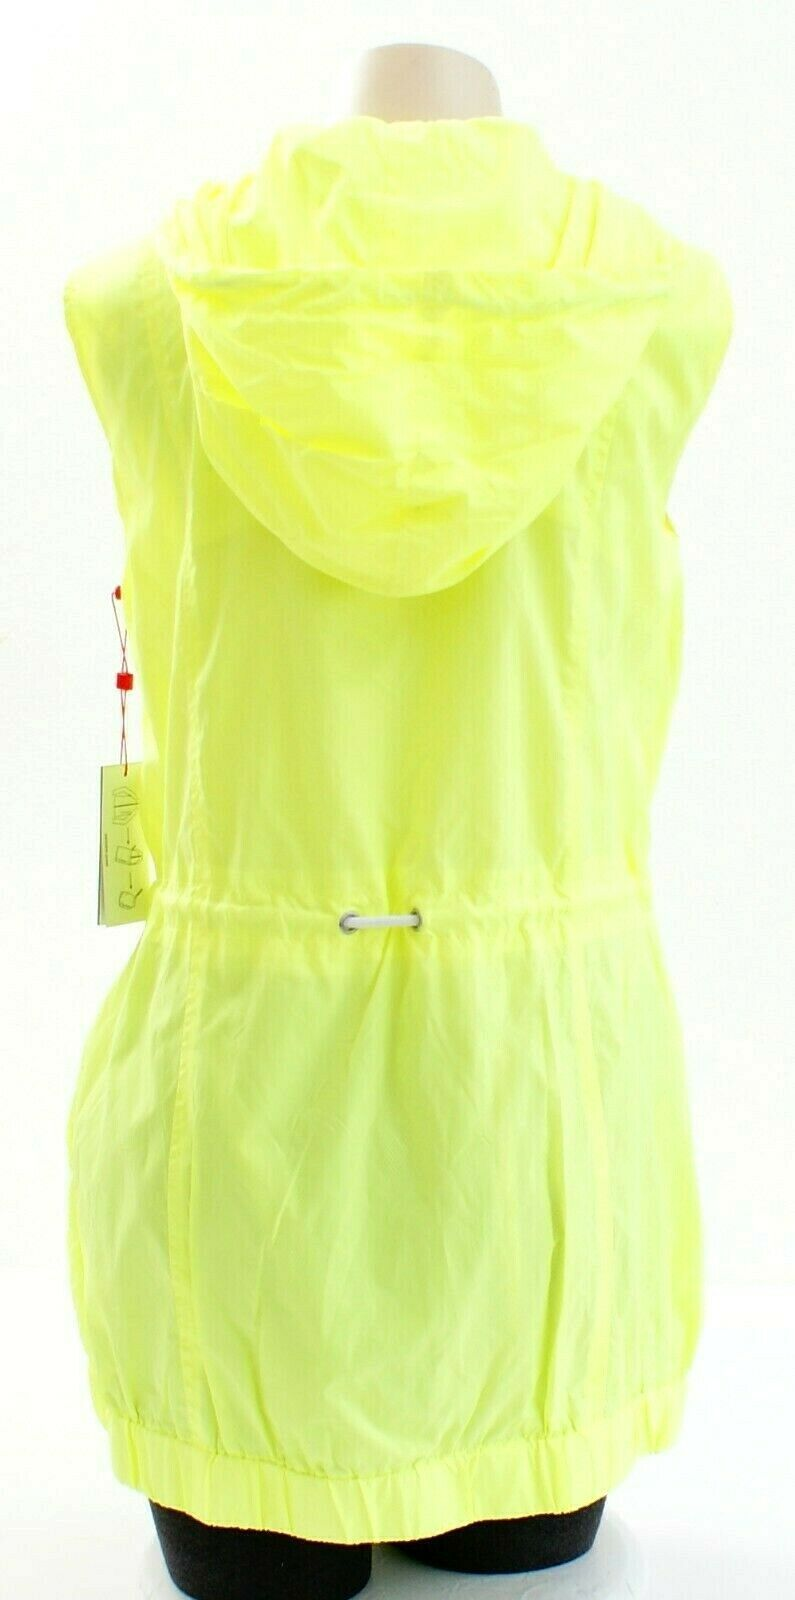 Tommy Hilfiger Yellow Zip Front Drawstring Hooded Sport Vest Women's Packable image 5